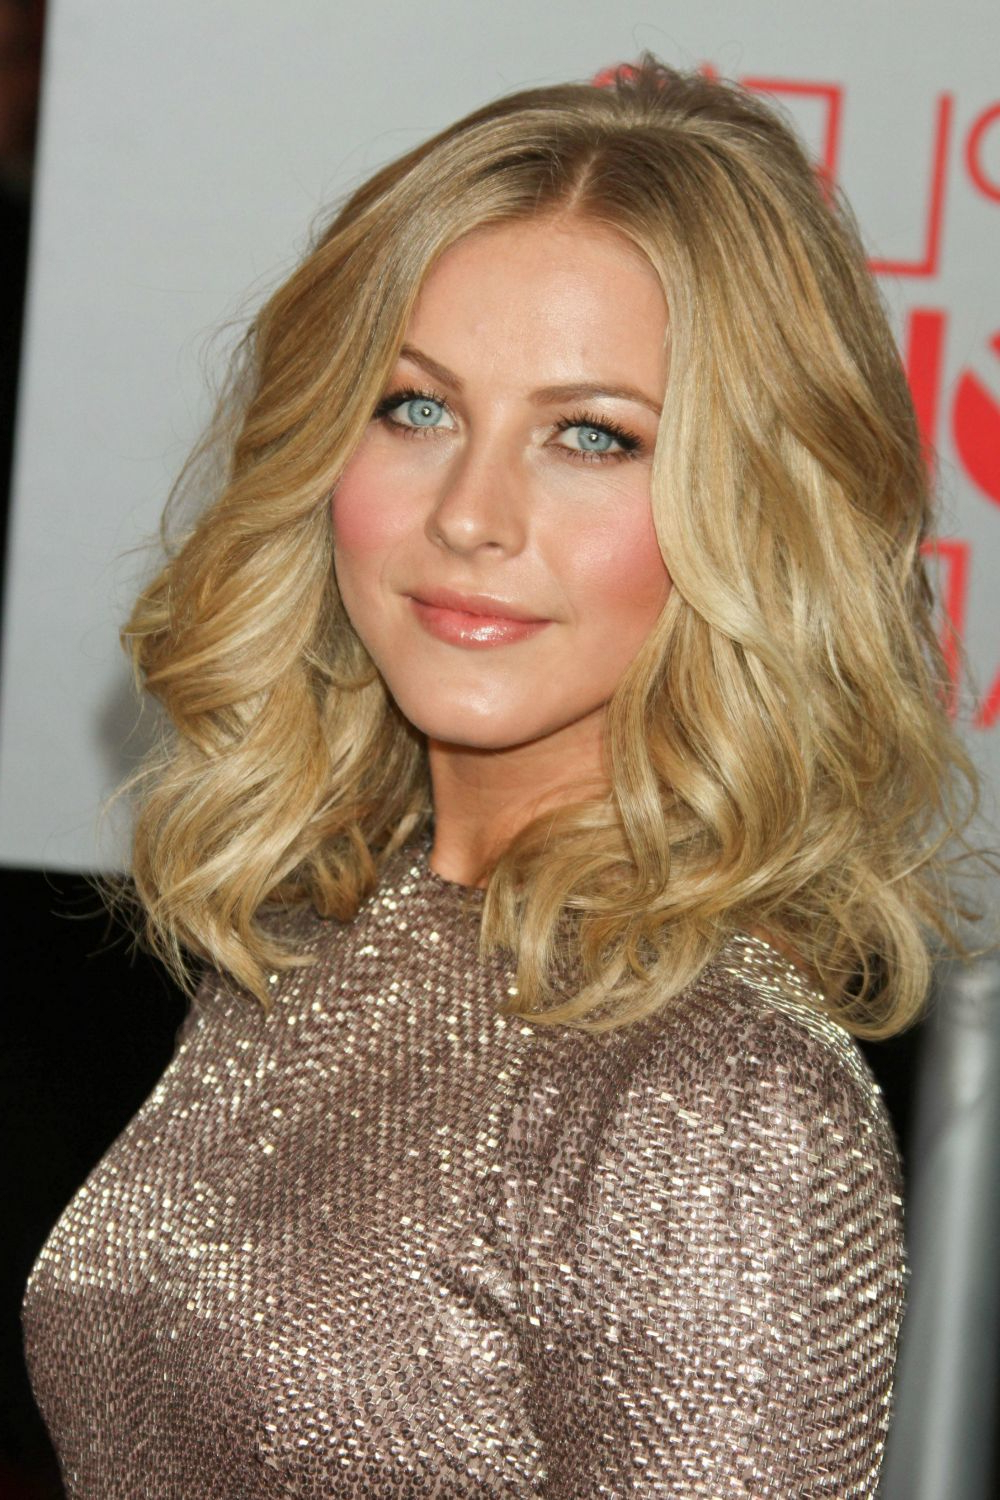 31 Gorgeous Photos Of Julianne Hough's Hair (View 2 of 20)